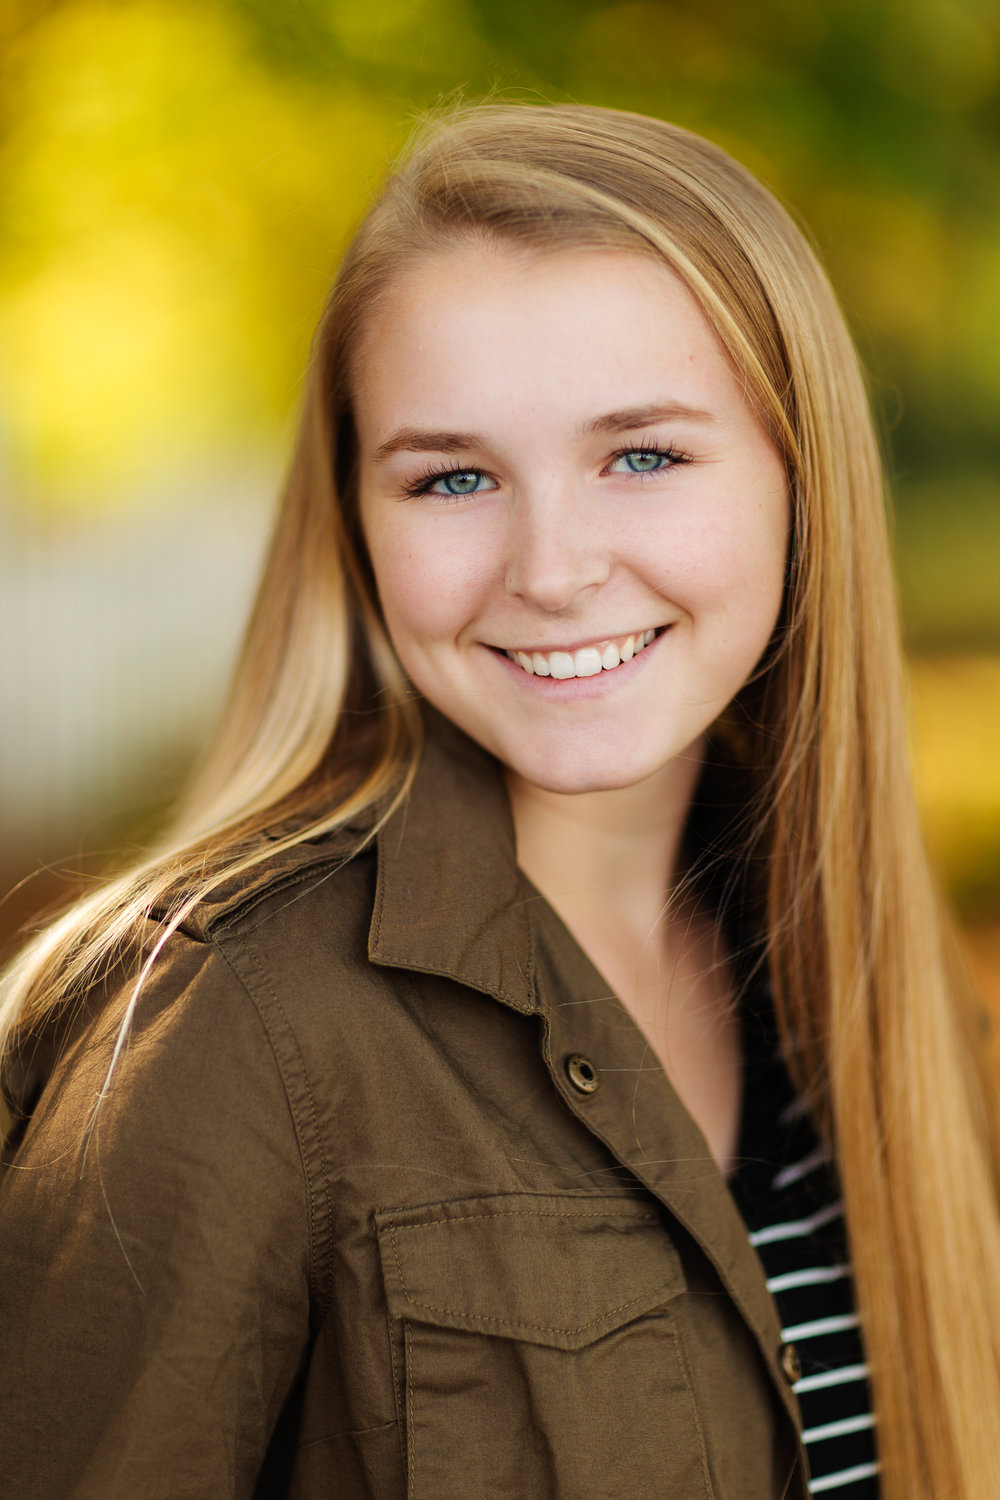 ariellanoellephotography-senior-portraits-highschool-portraiture-monroe-washington-seattle-duvall-woodinville-redmond-kirkland-area-1-10.jpg